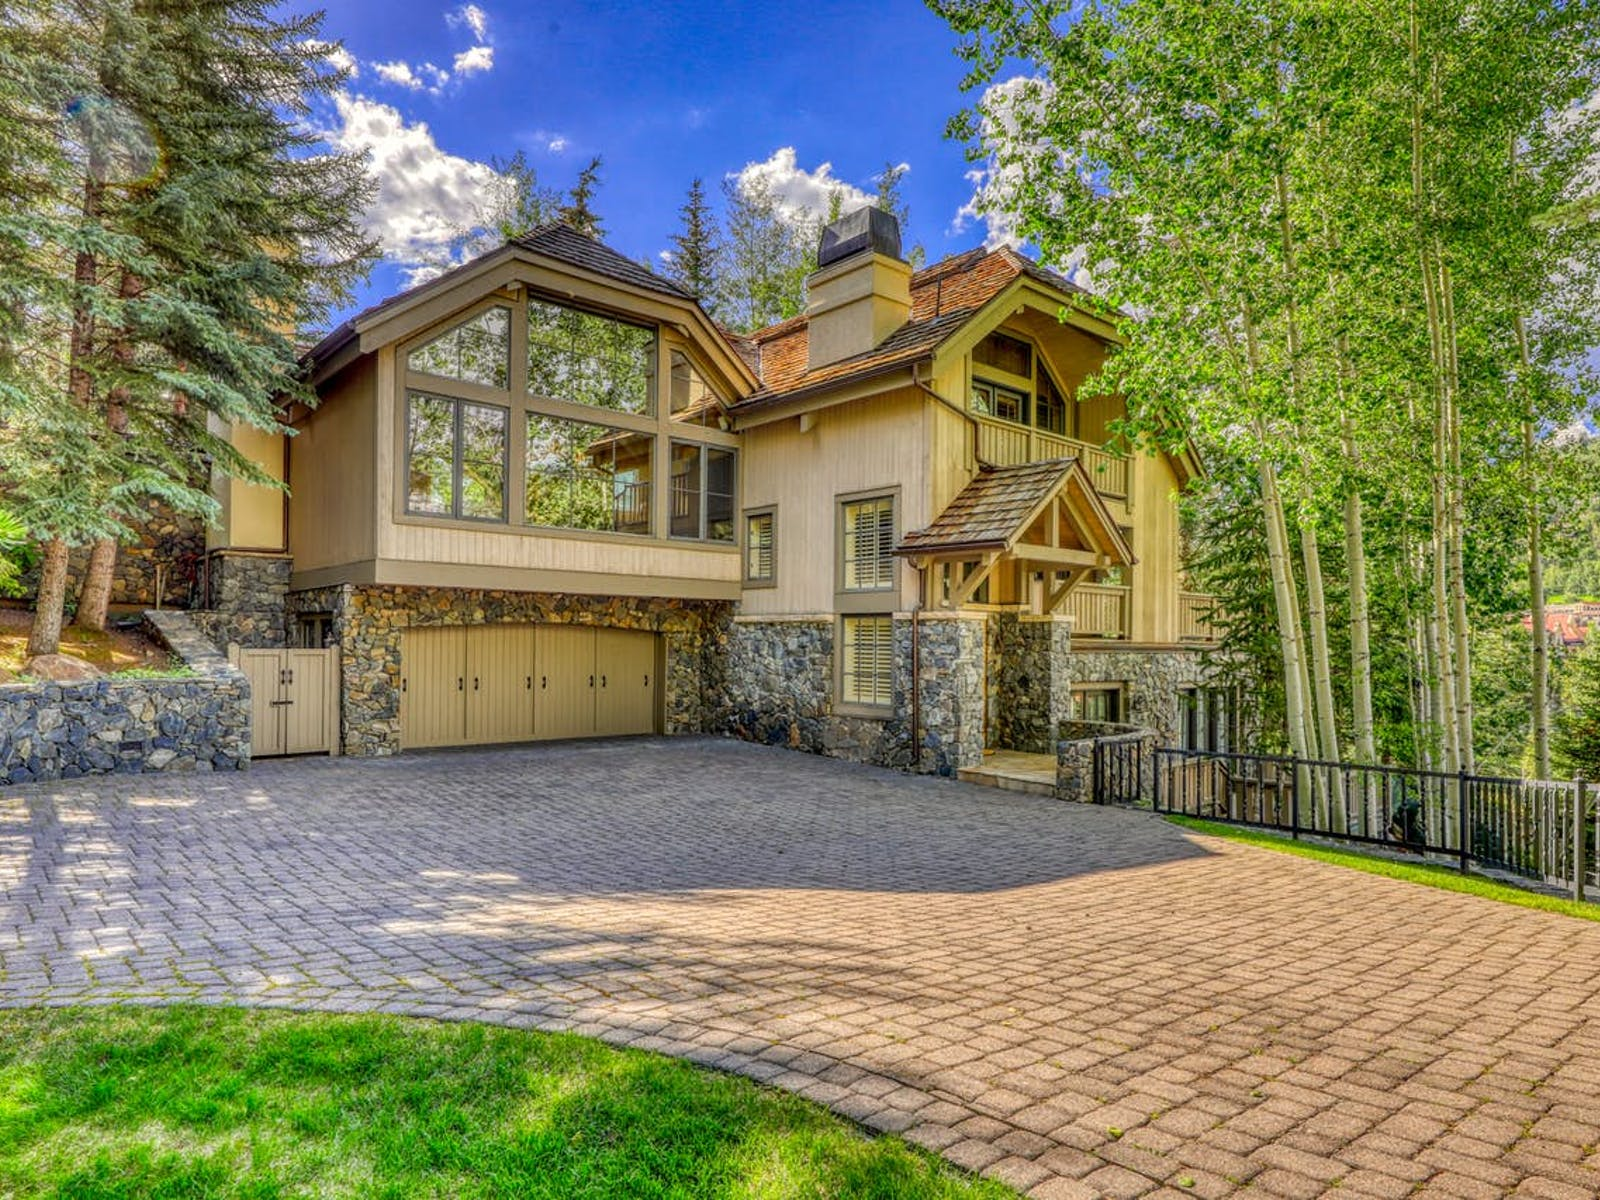 Large vacation rental in Colorado